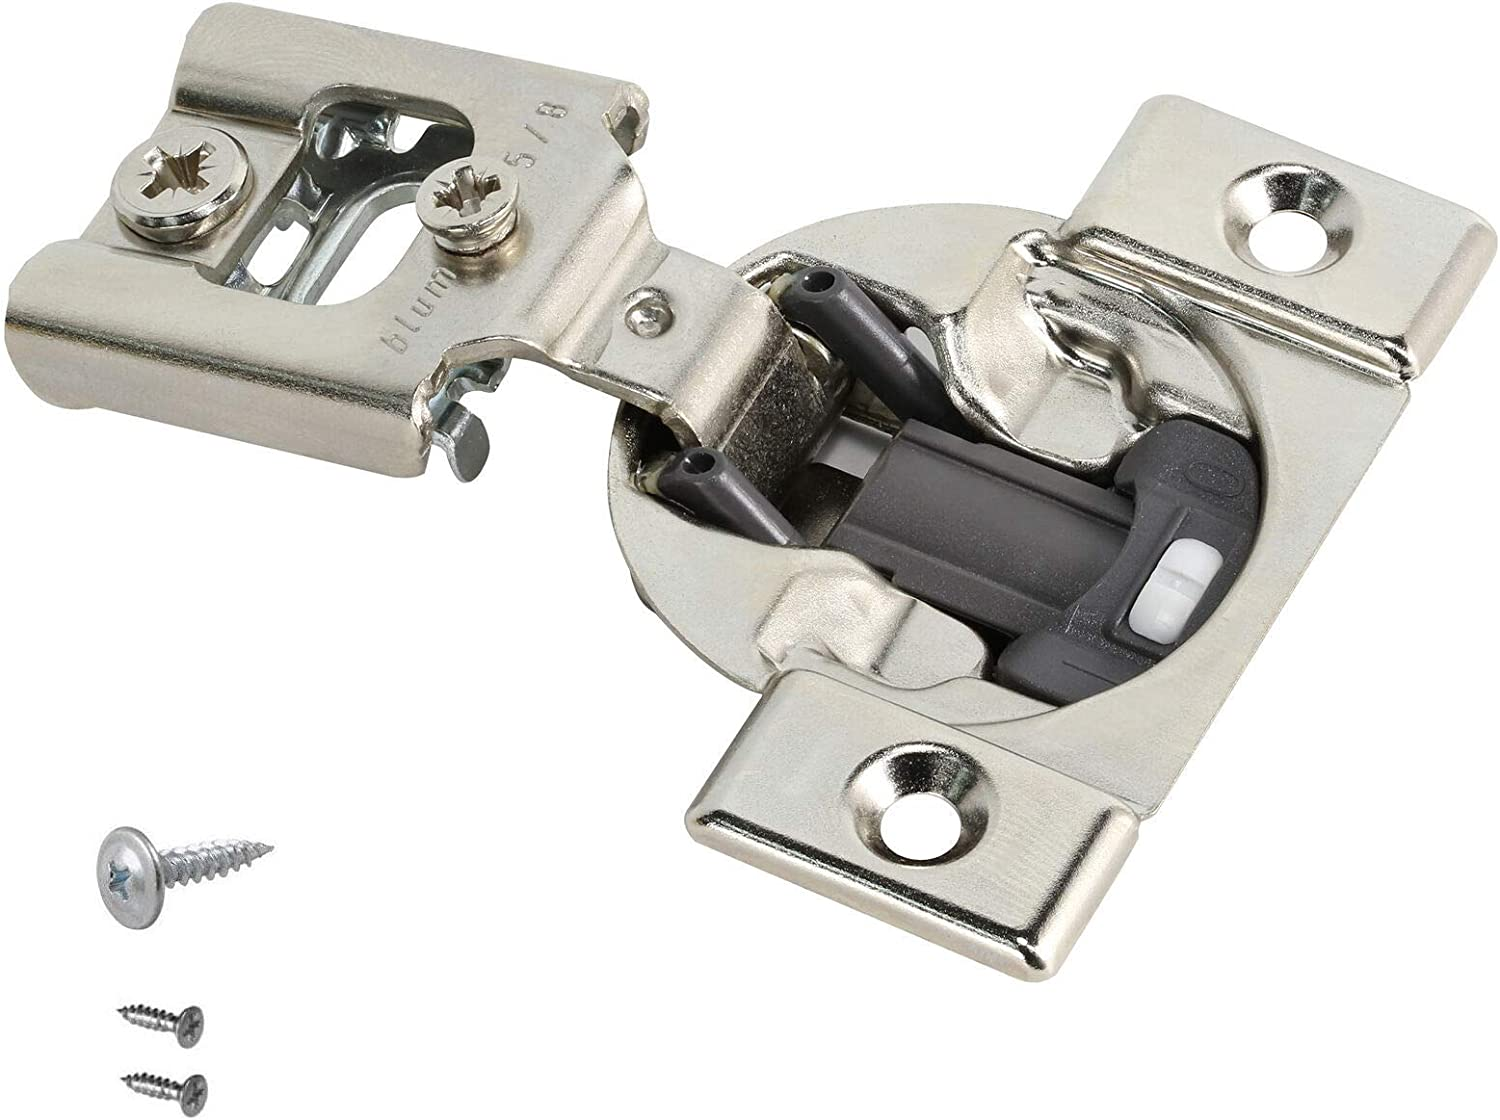 Blum Hinge for Framed cabinets Face and 3 8 Overlay Max 58% OFF Bargain sale Frame with